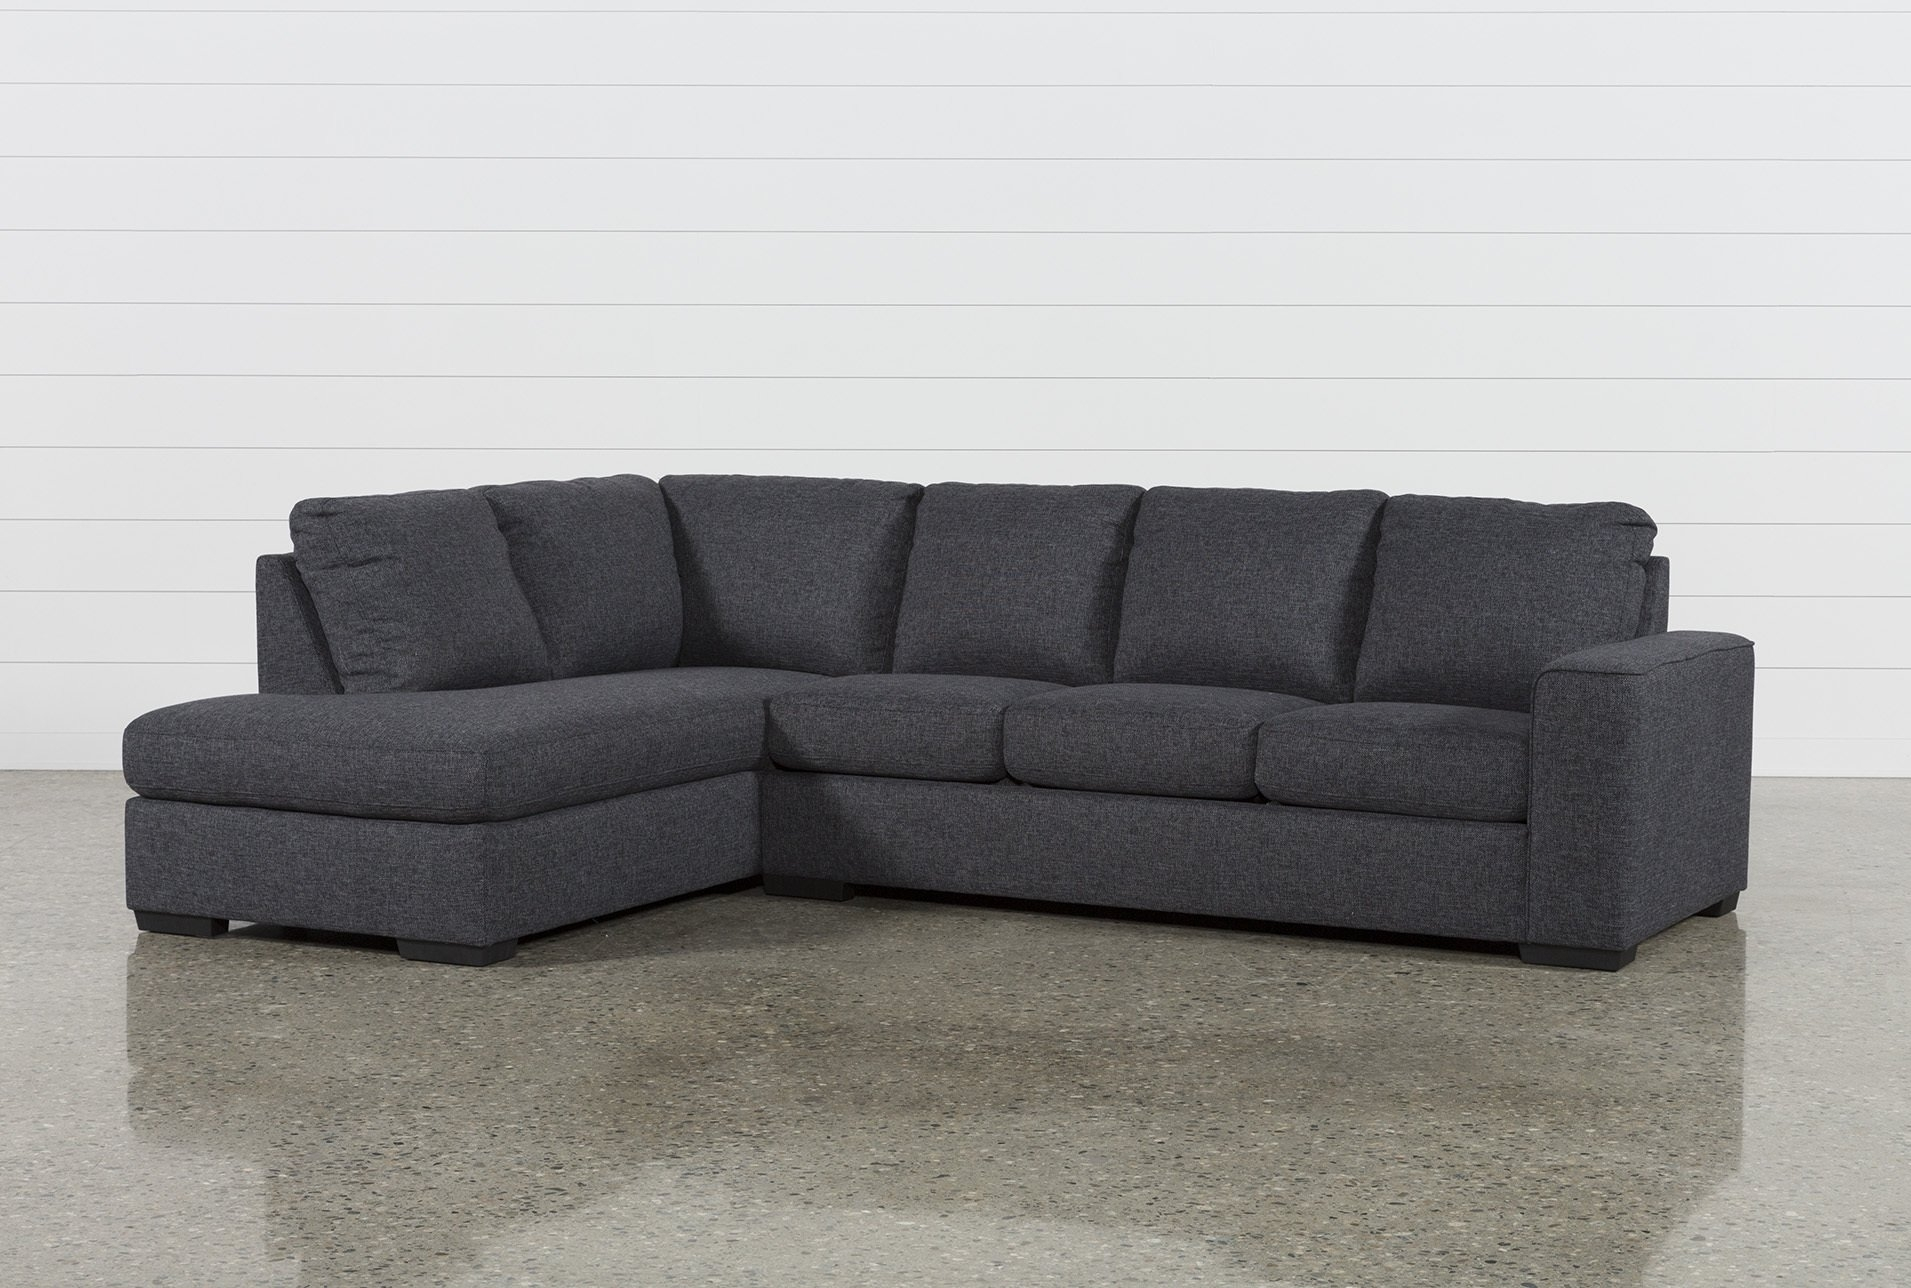 Lucy Dark Grey 2 Piece Sectional W/laf Chaise | Dark Grey And Products throughout Aquarius Dark Grey 2 Piece Sectionals With Raf Chaise (Image 18 of 30)